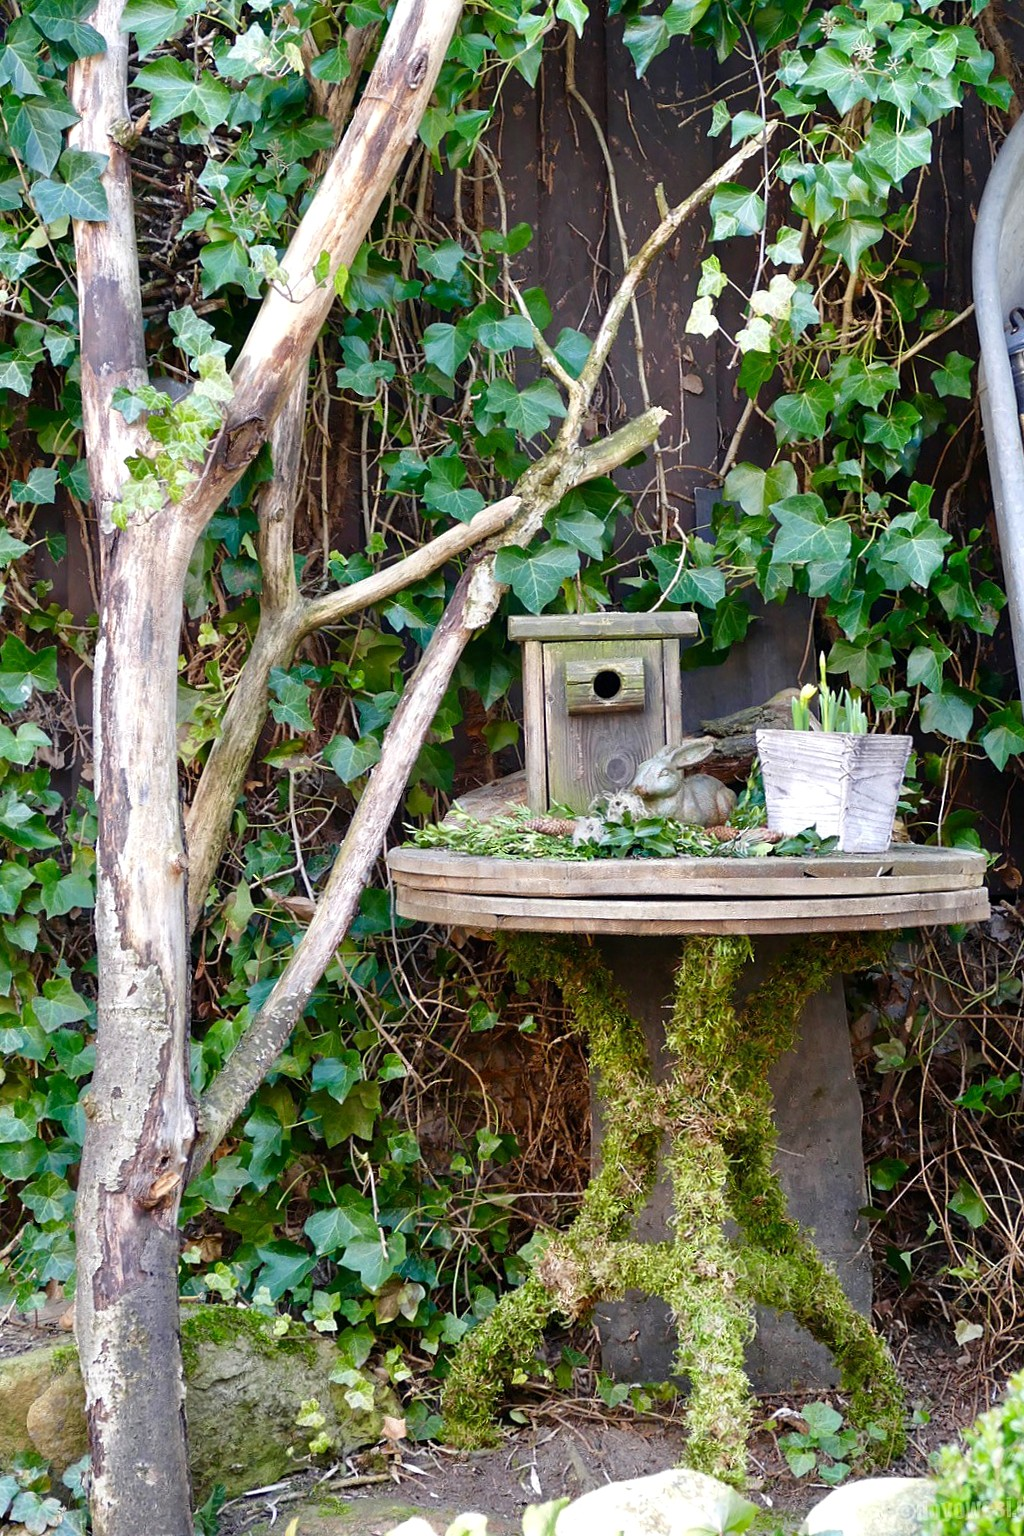 Moss covered wooden spool outdoor garden table, by Karin Urban - Natural Style, featured on Funky Junk Interiors using Funky Junk's Old Sign Stencils